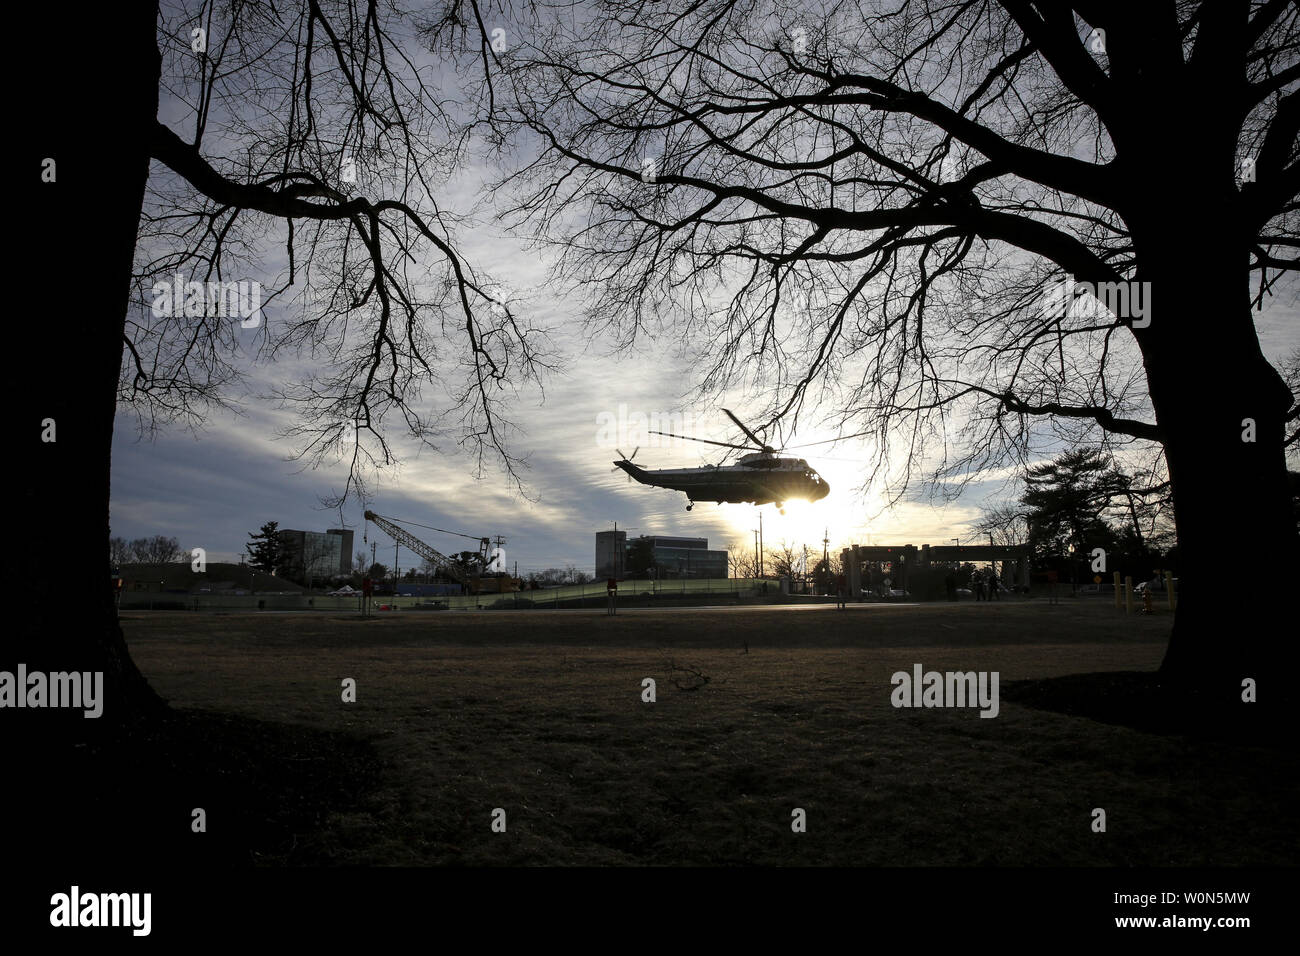 Marine One carrying President Donald Trump departs from Walter Reed National Military Medical Center after his annual physical exam in Bethesda, Maryland, on February 8, 2018..   Photo by Oliver Contreras/UPI Stock Photo